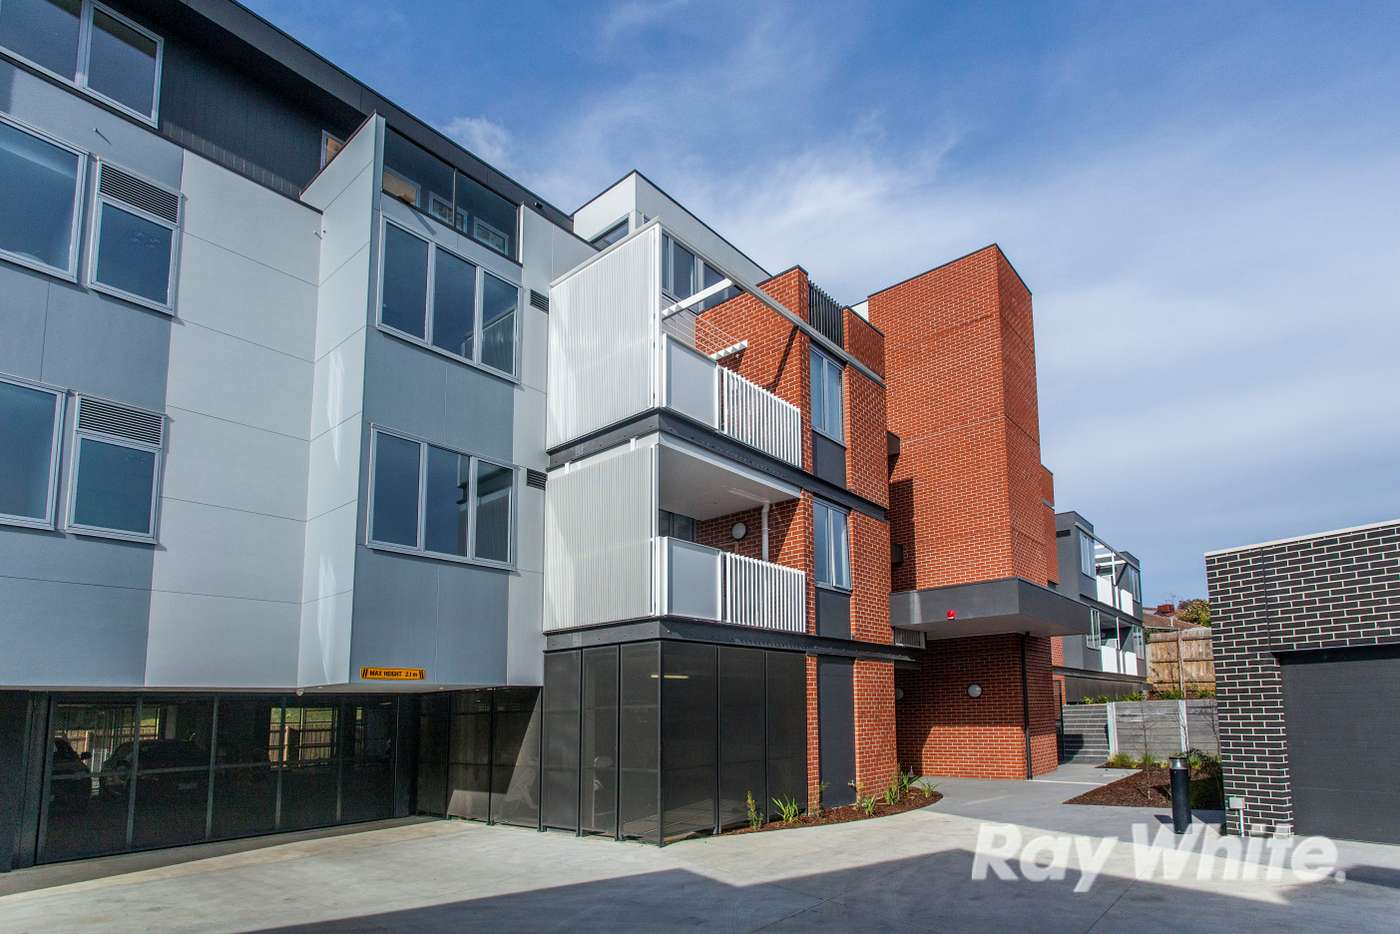 Main view of Homely apartment listing, 105/32 Adrian Street, Chadstone, VIC 3148